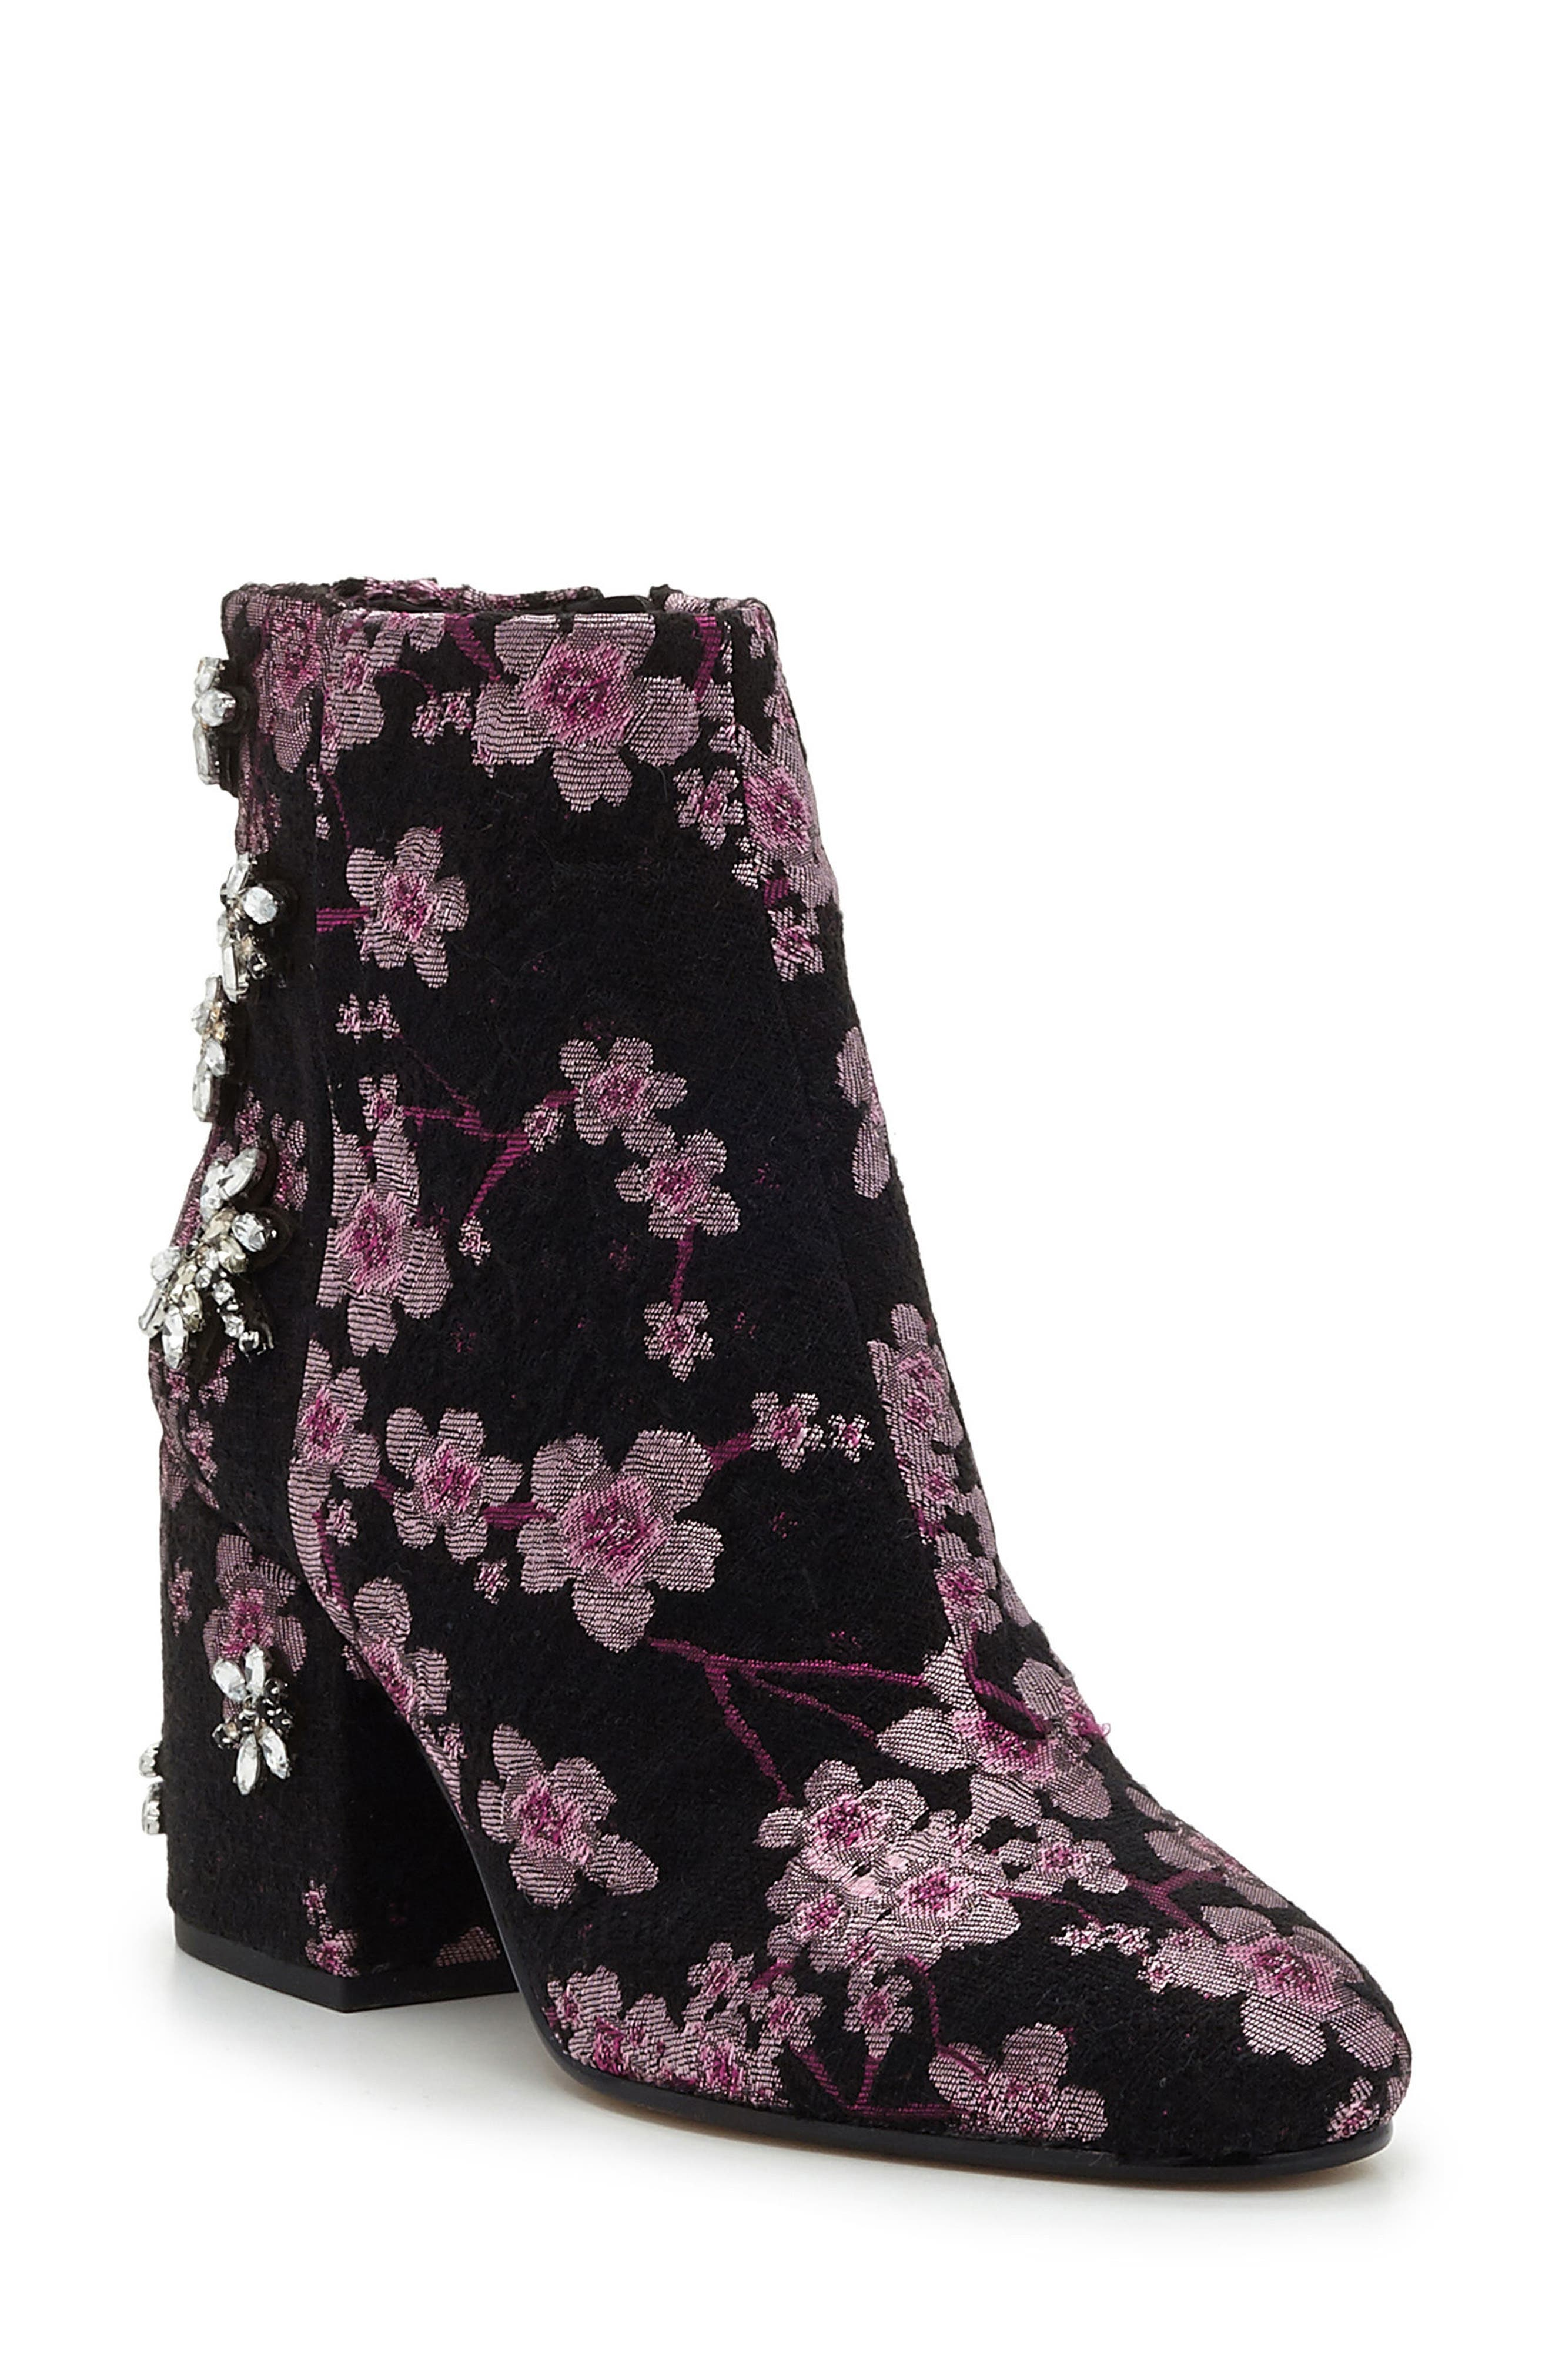 'Taye' Bootie,                         Main,                         color, Pink Multi Brocade